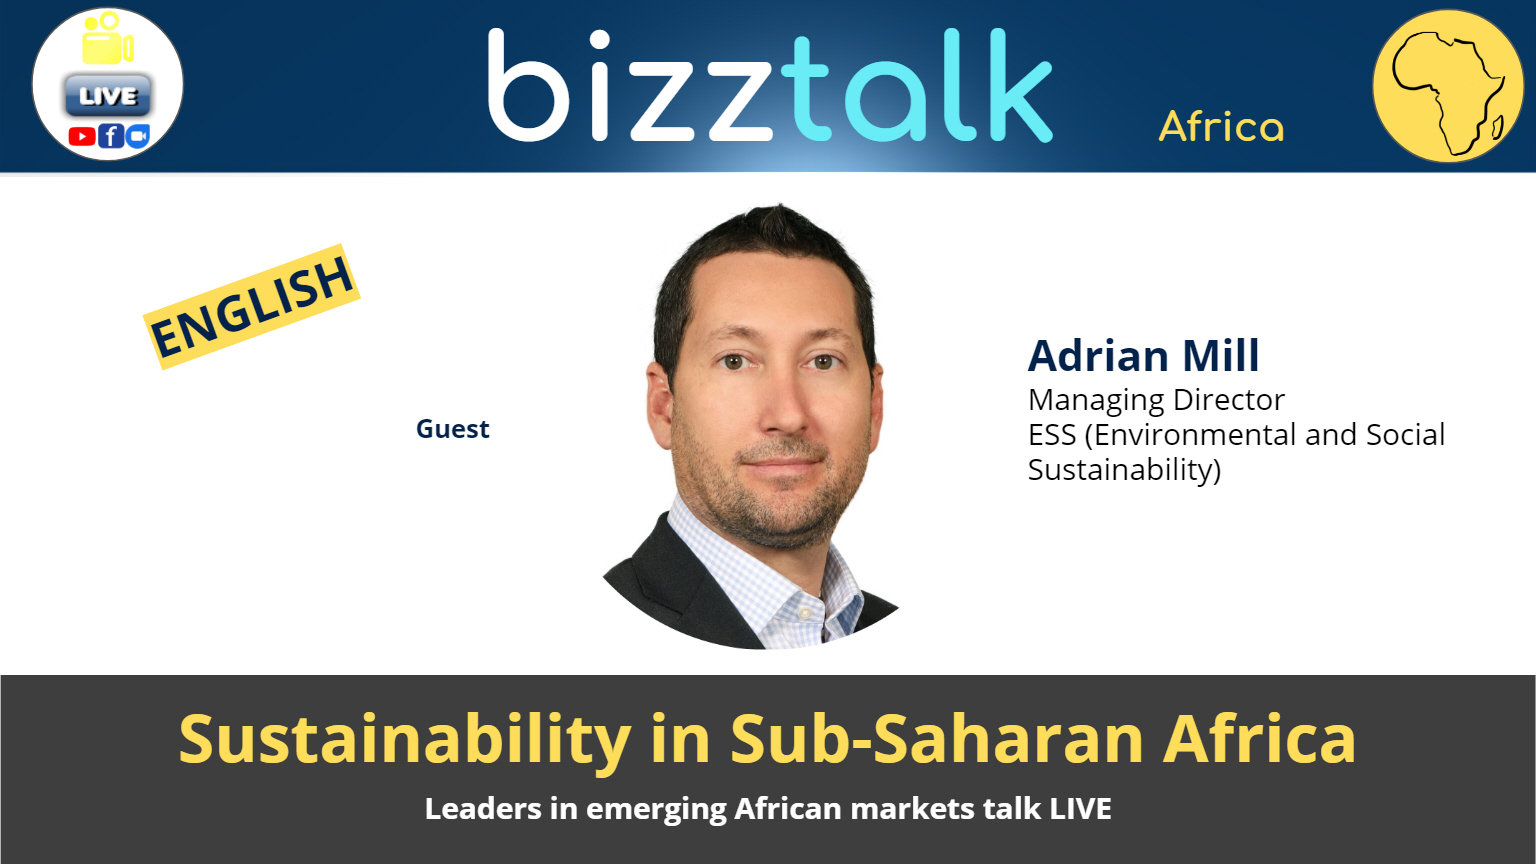 Sustainability in Sub-Saharan Africa